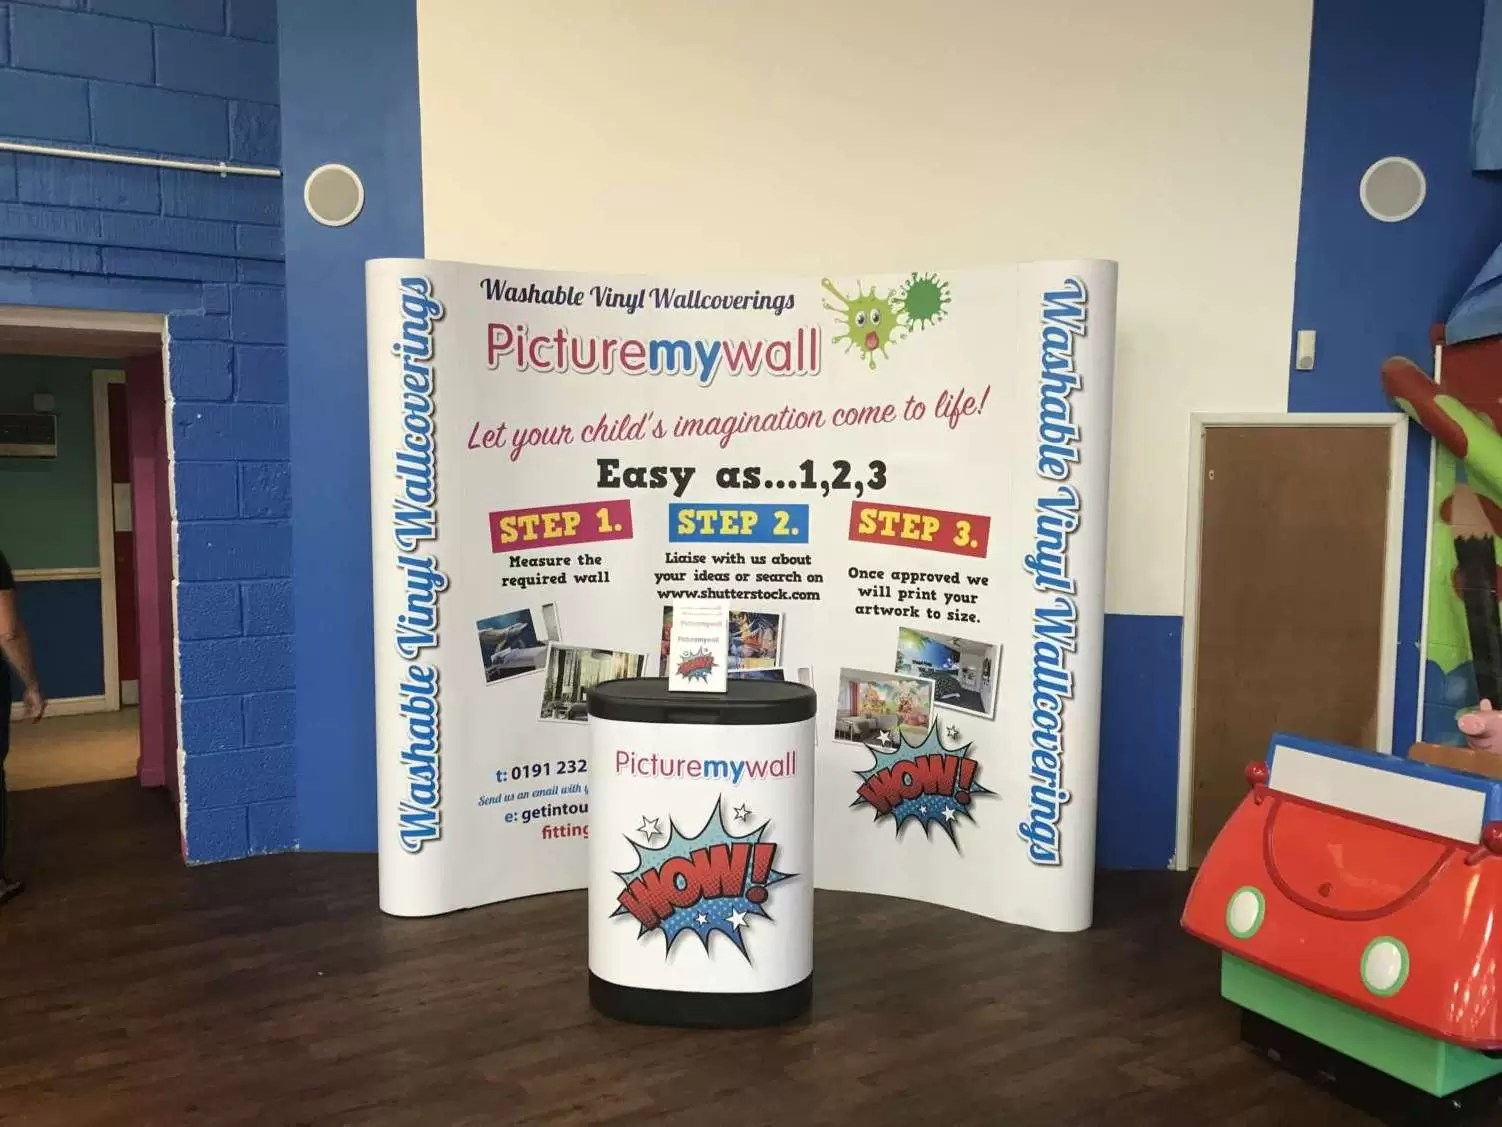 3x3 Exhibition & Display Stand